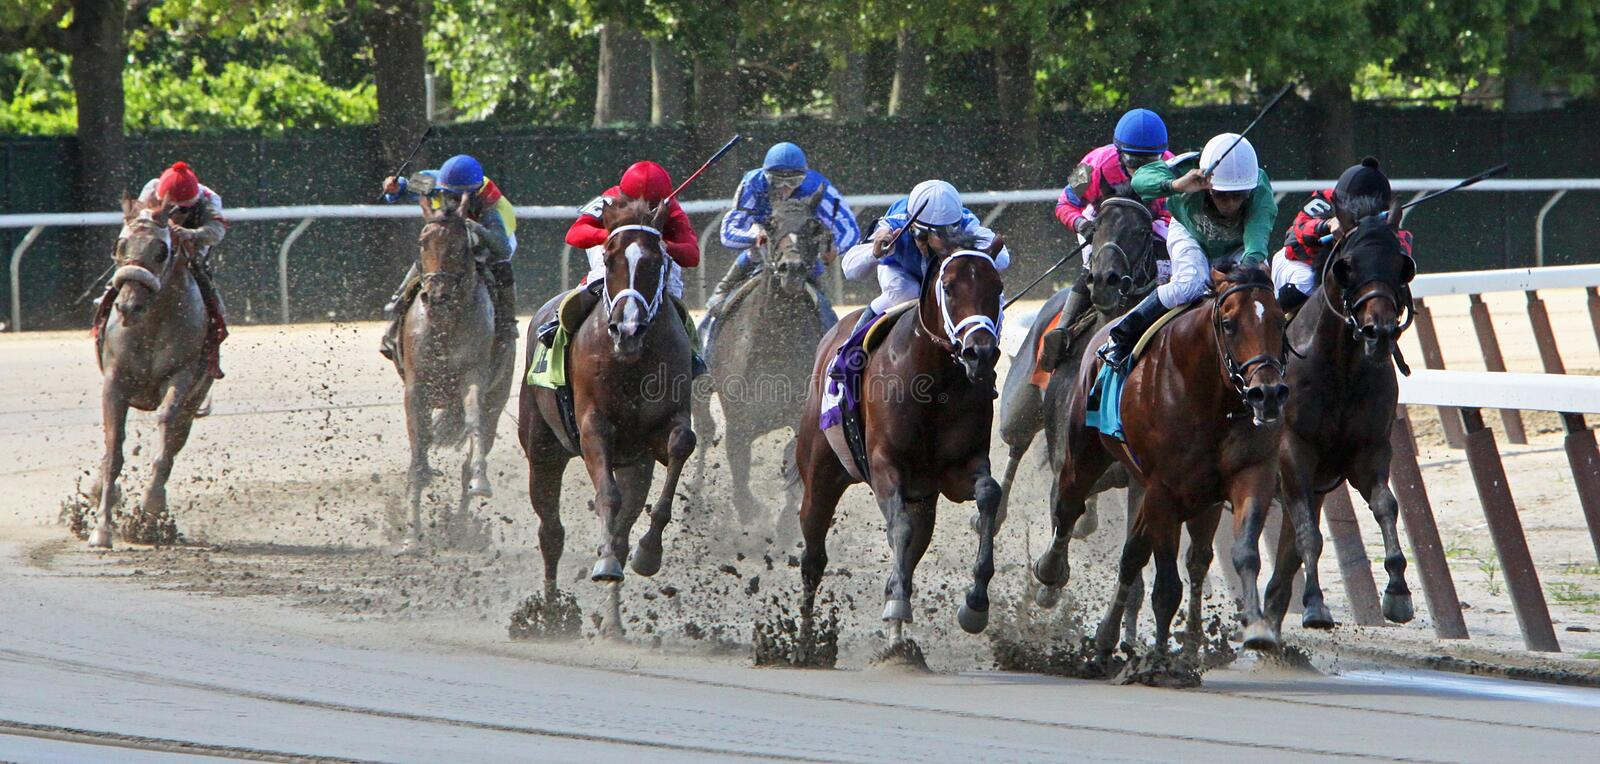 Around the Far Turn. ELMONT, NY - JUN 23: The field takes the far turn in a maiden race at Belmont Park on June 23 in Elmont, NY. Eventual winner is Bailey Park stock photography